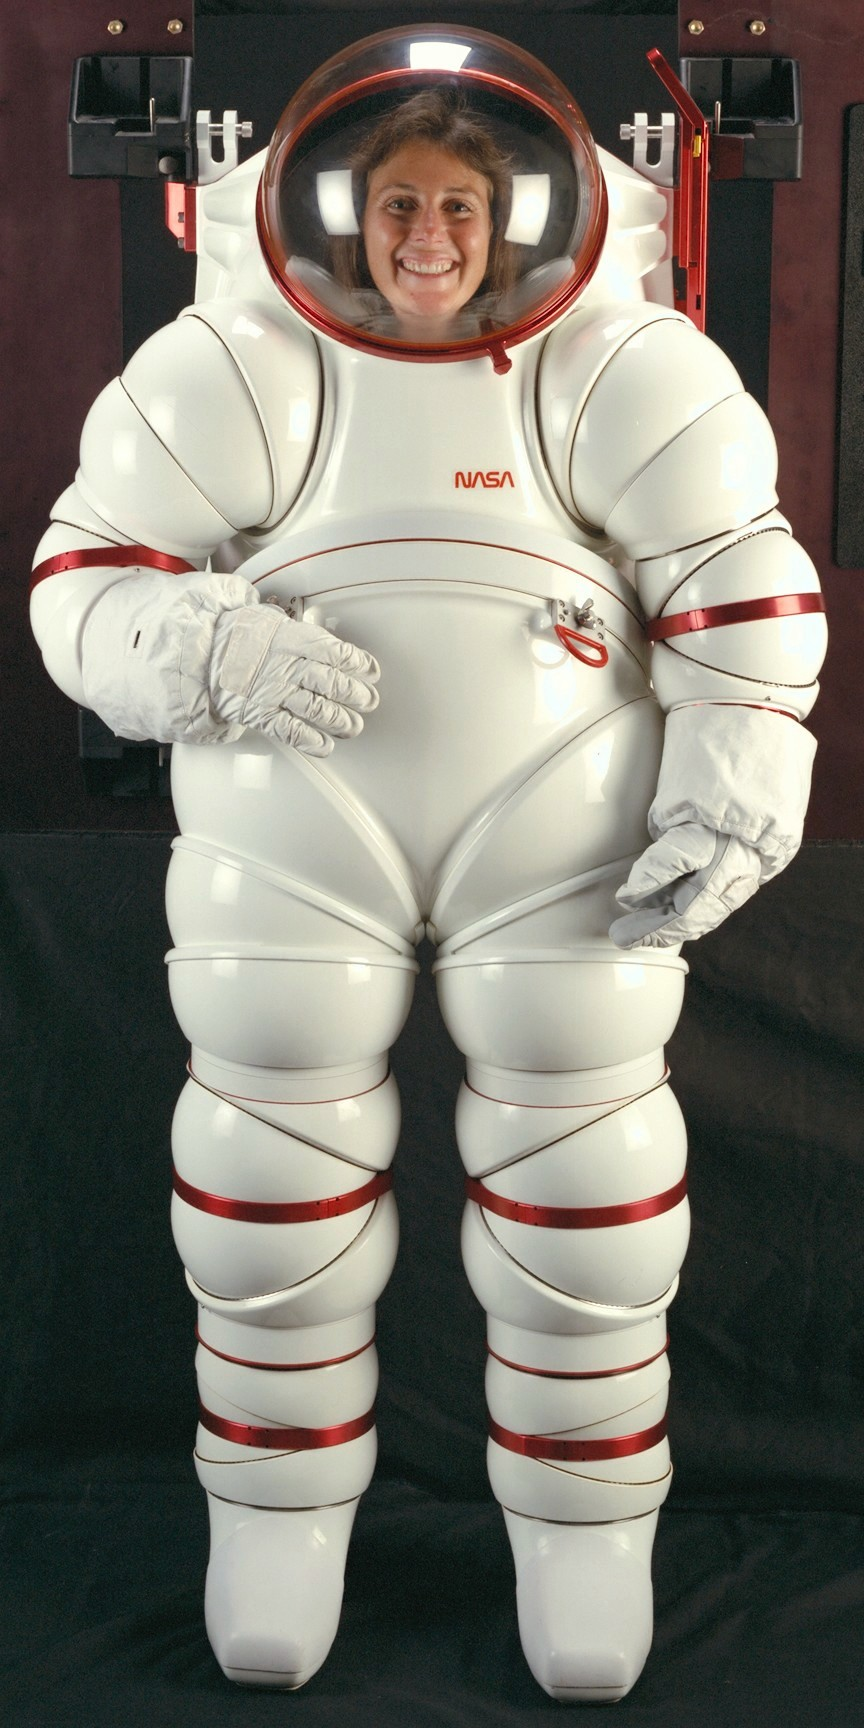 Spacex 39 s space suit spacex for Space suit fabric